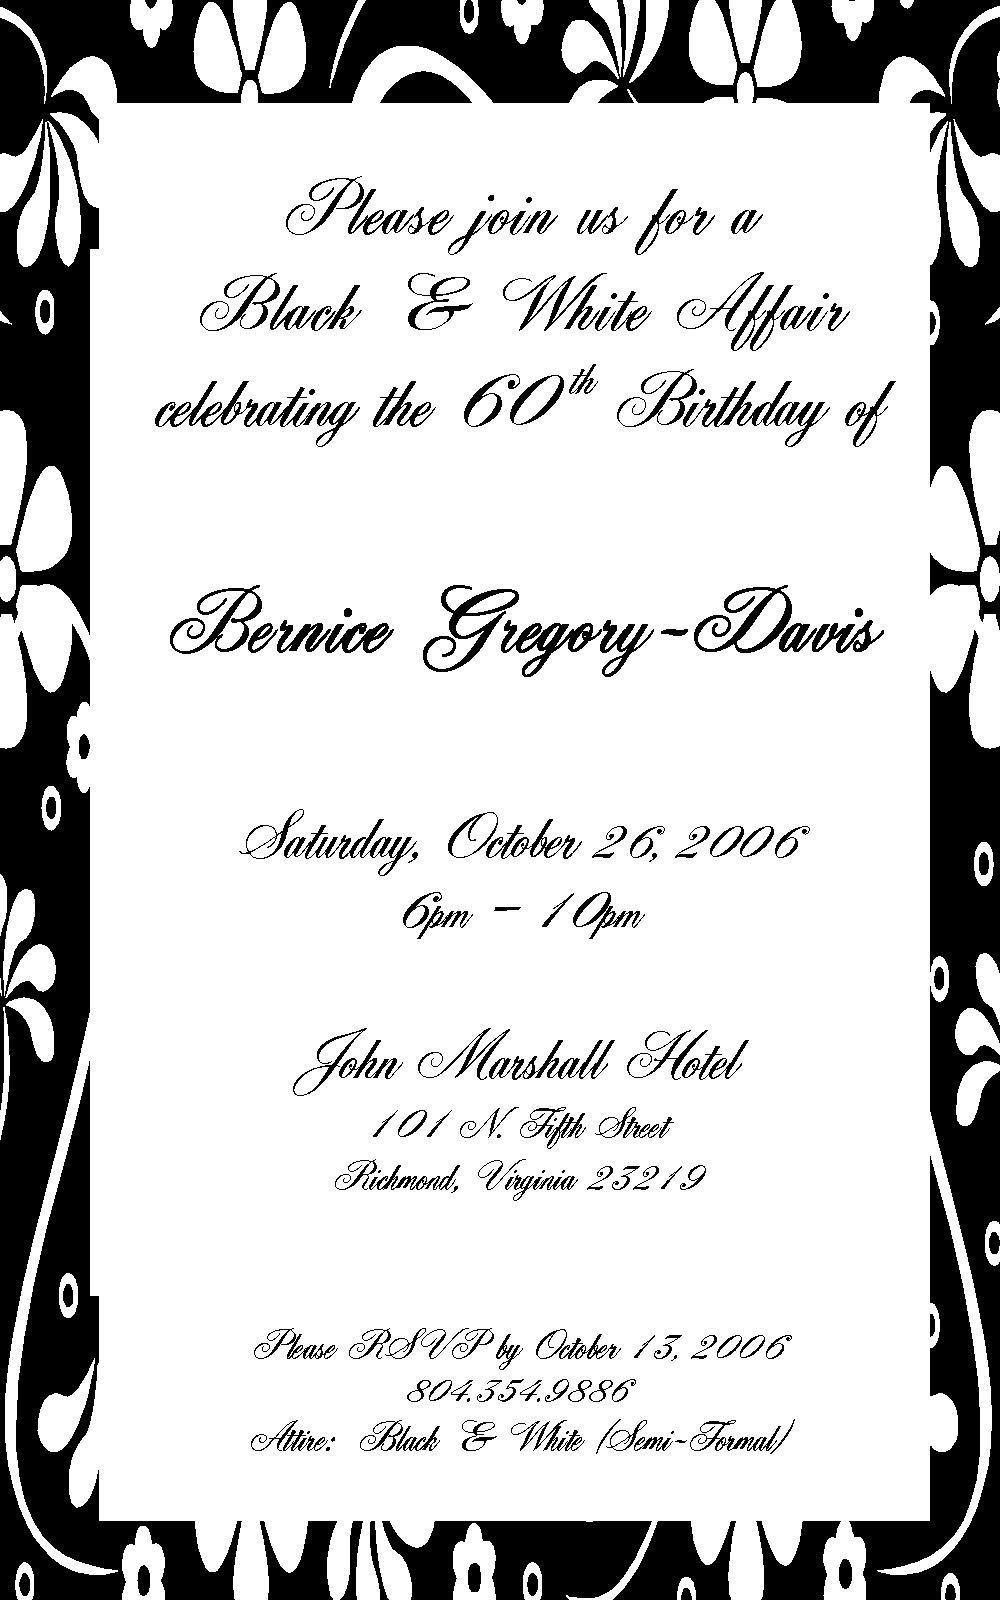 Images For Birthday Dinner Party Invitation Template – Dinner Party Invitation Templates